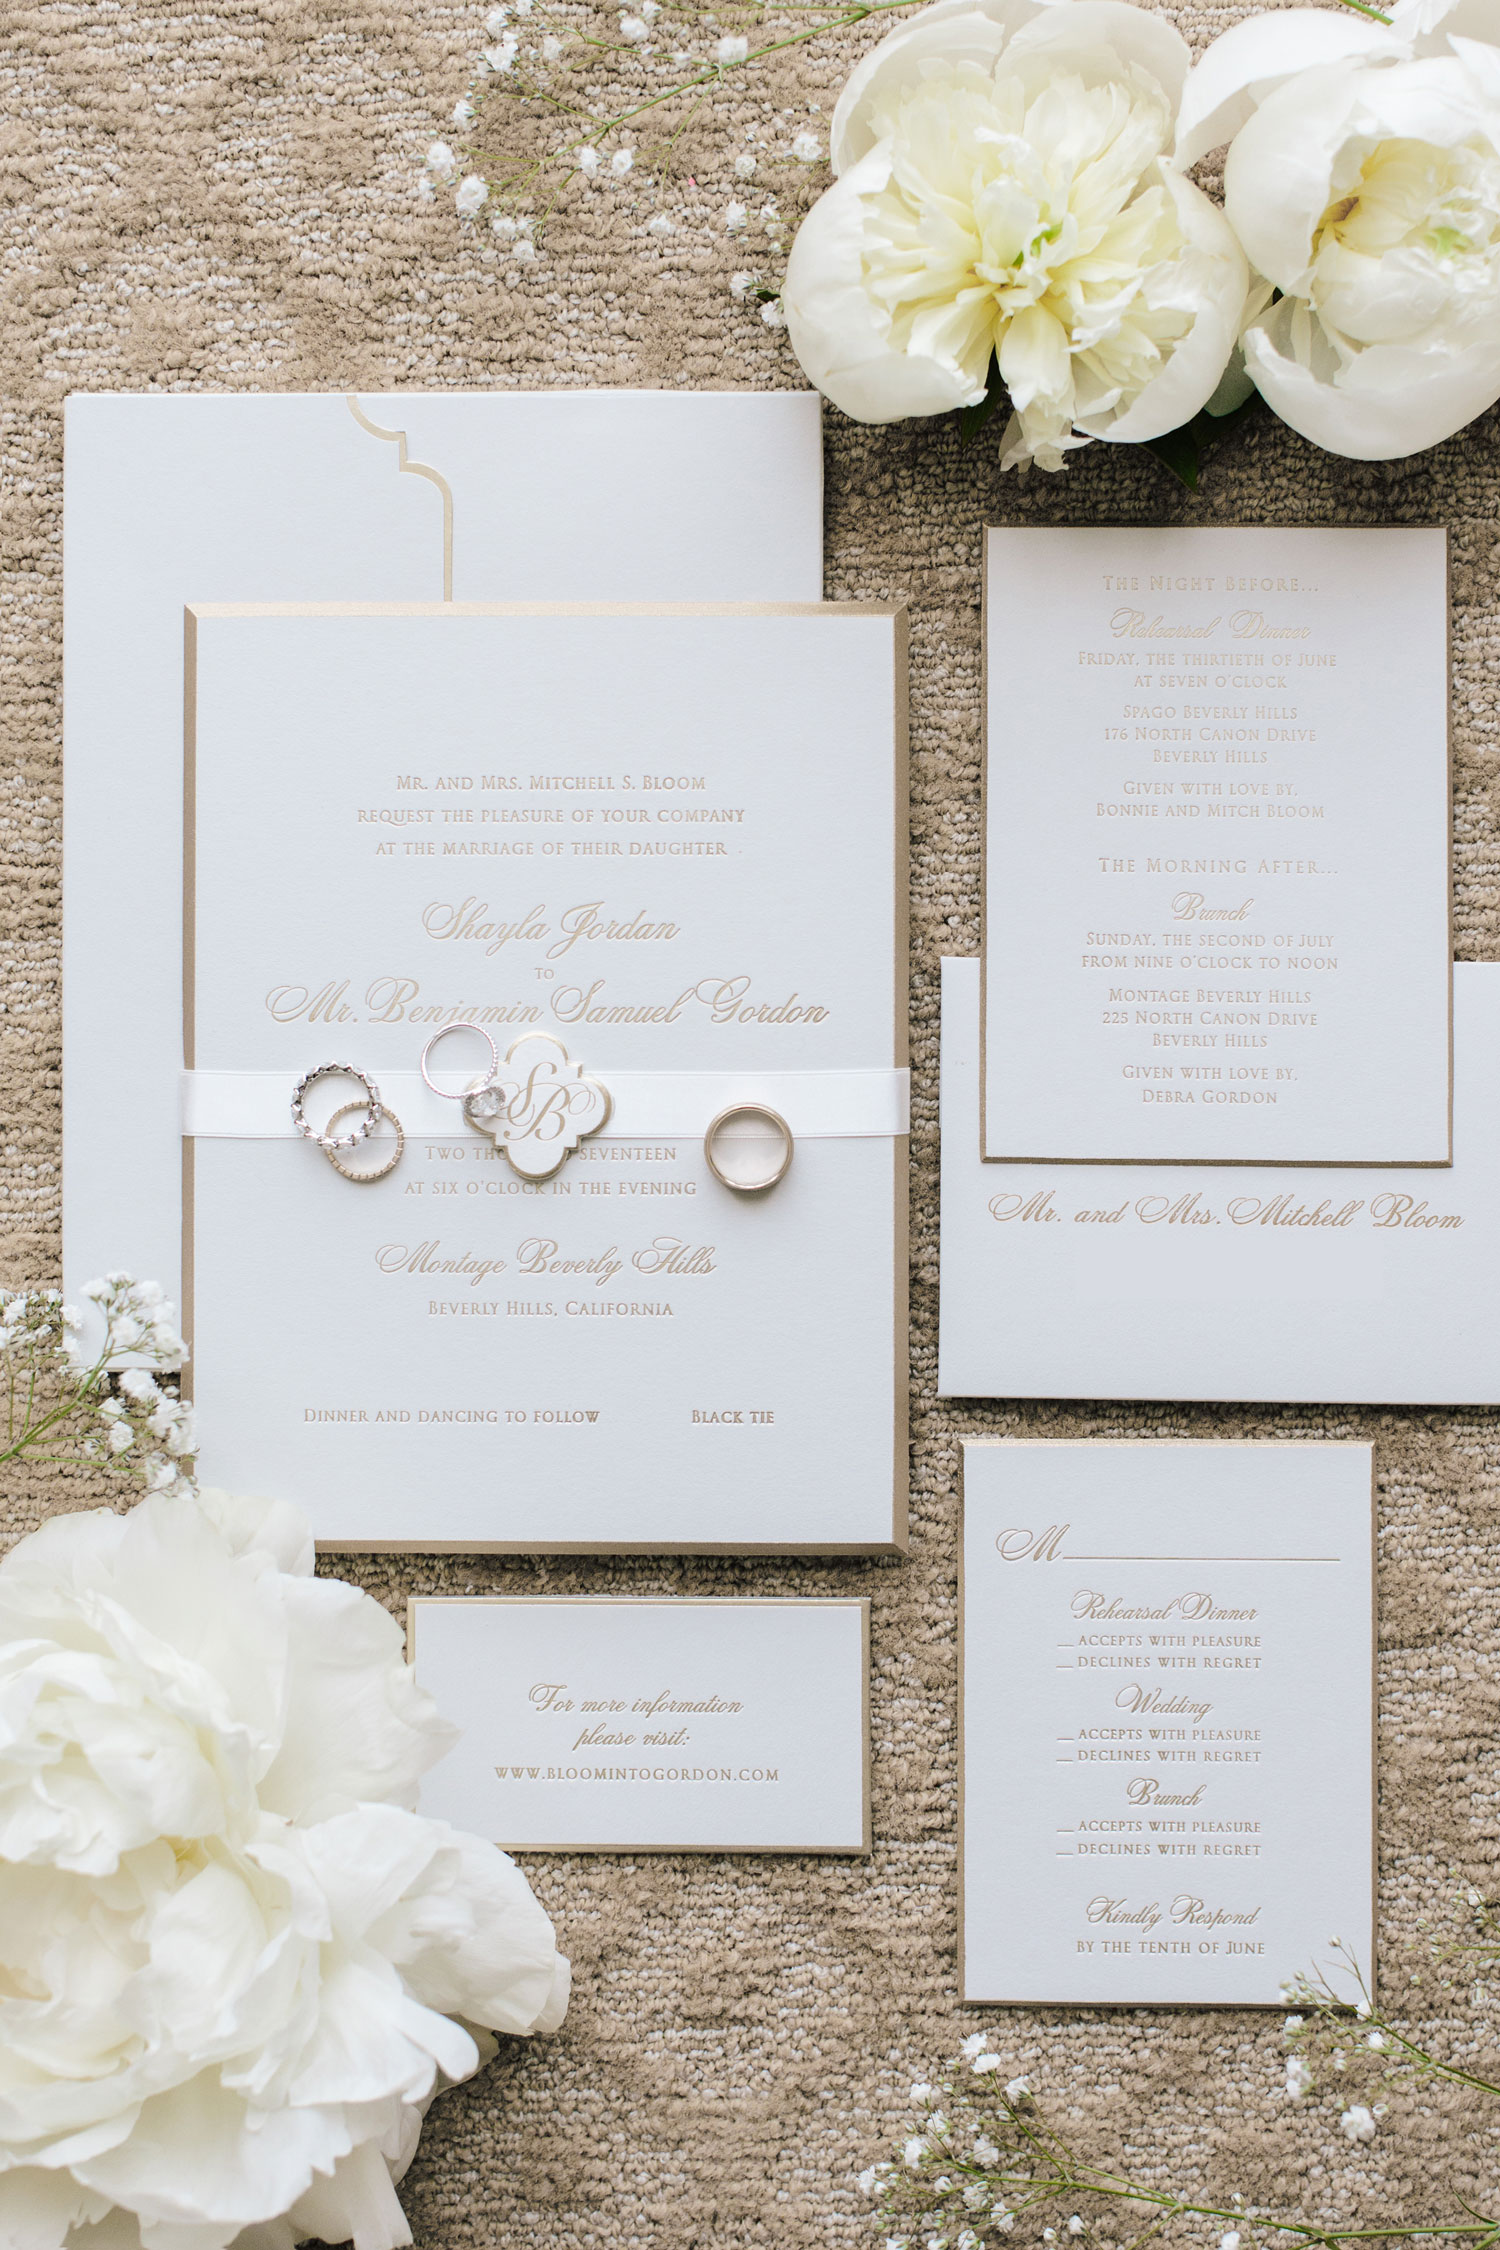 Simple white and gold invitation suite geller events lehr and black inside weddings spring 2018 issue